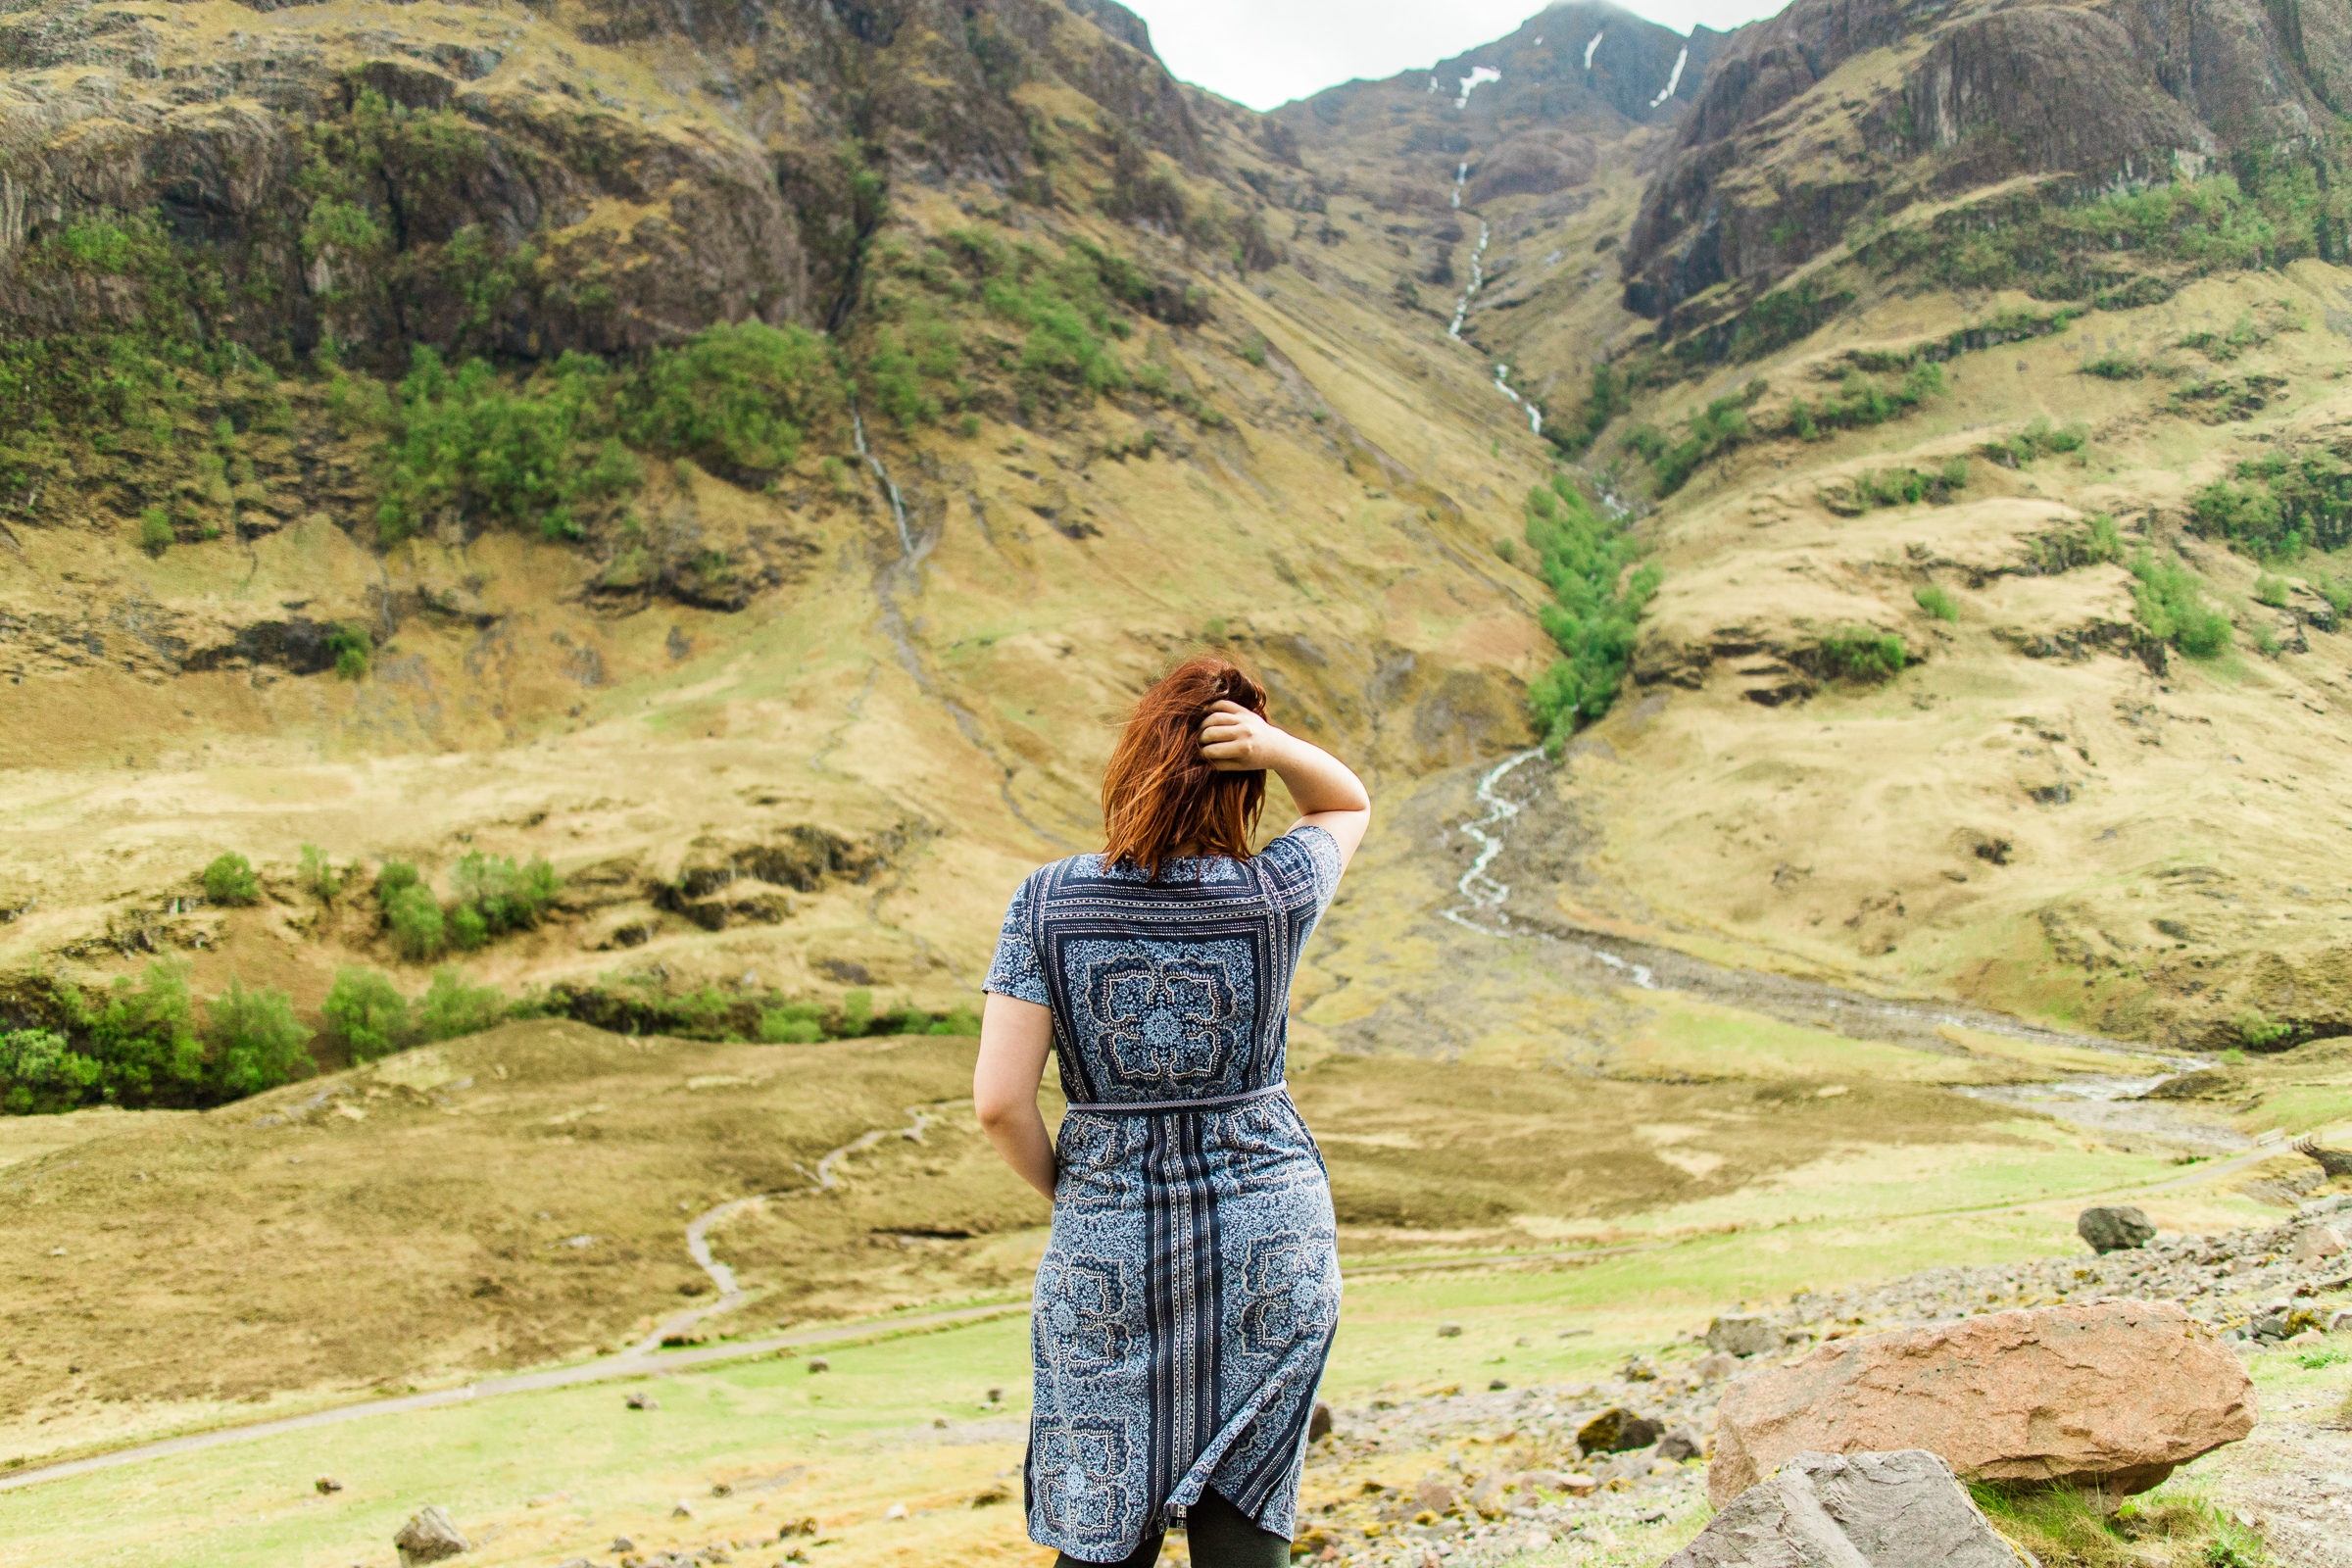 And now here we are at this infamous photo ;) The one I've plastered everywhere because it was the most magical moment of my life. Glen Coe, Scottish Highlands.